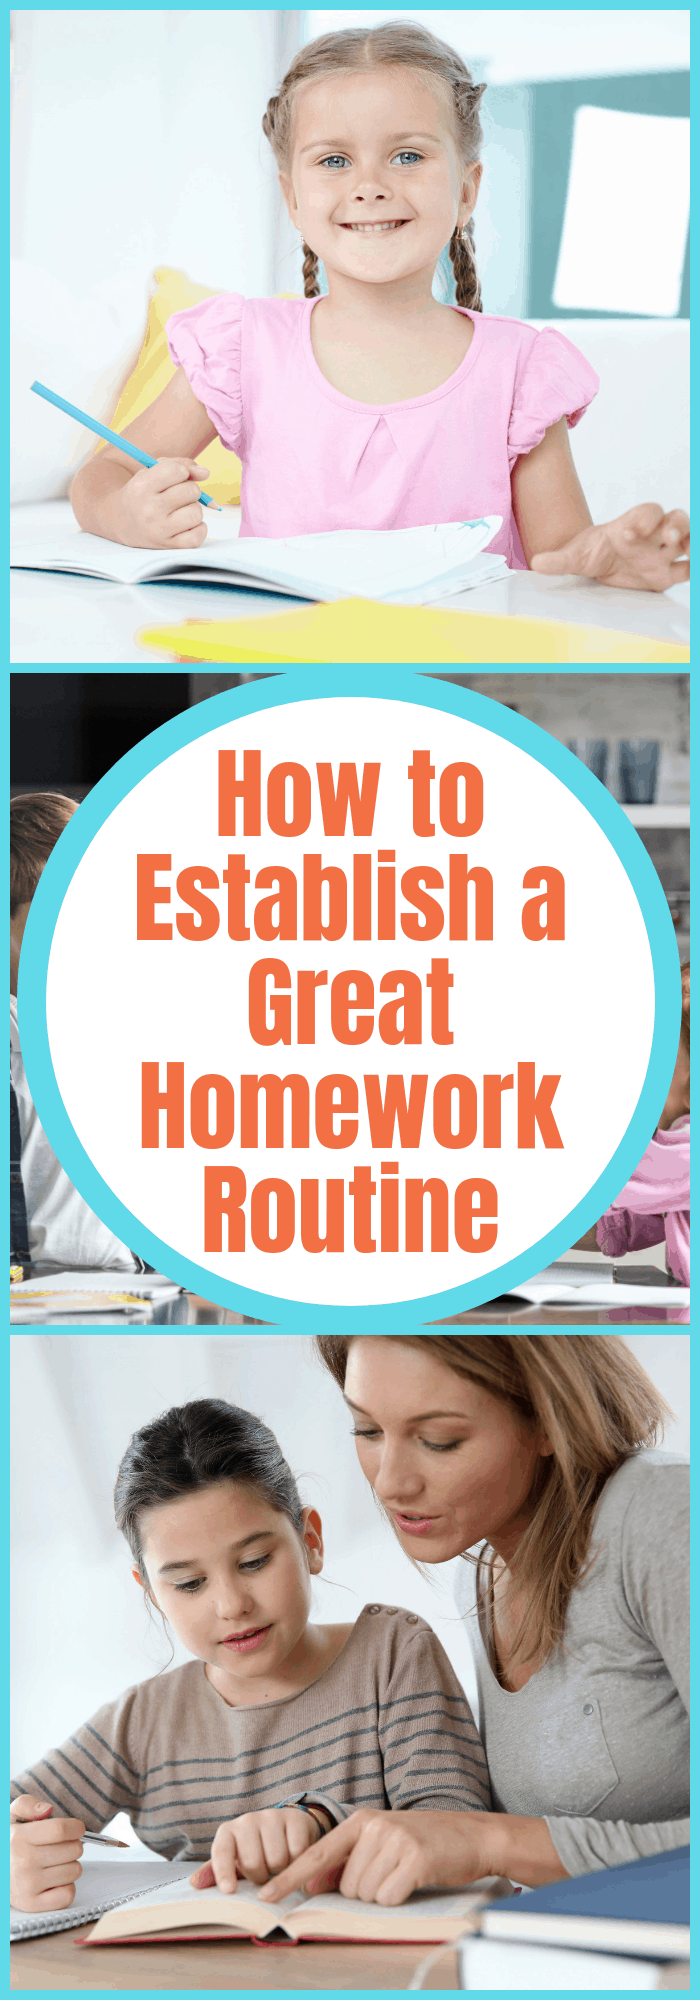 How ti Establish a Great Homework Routine